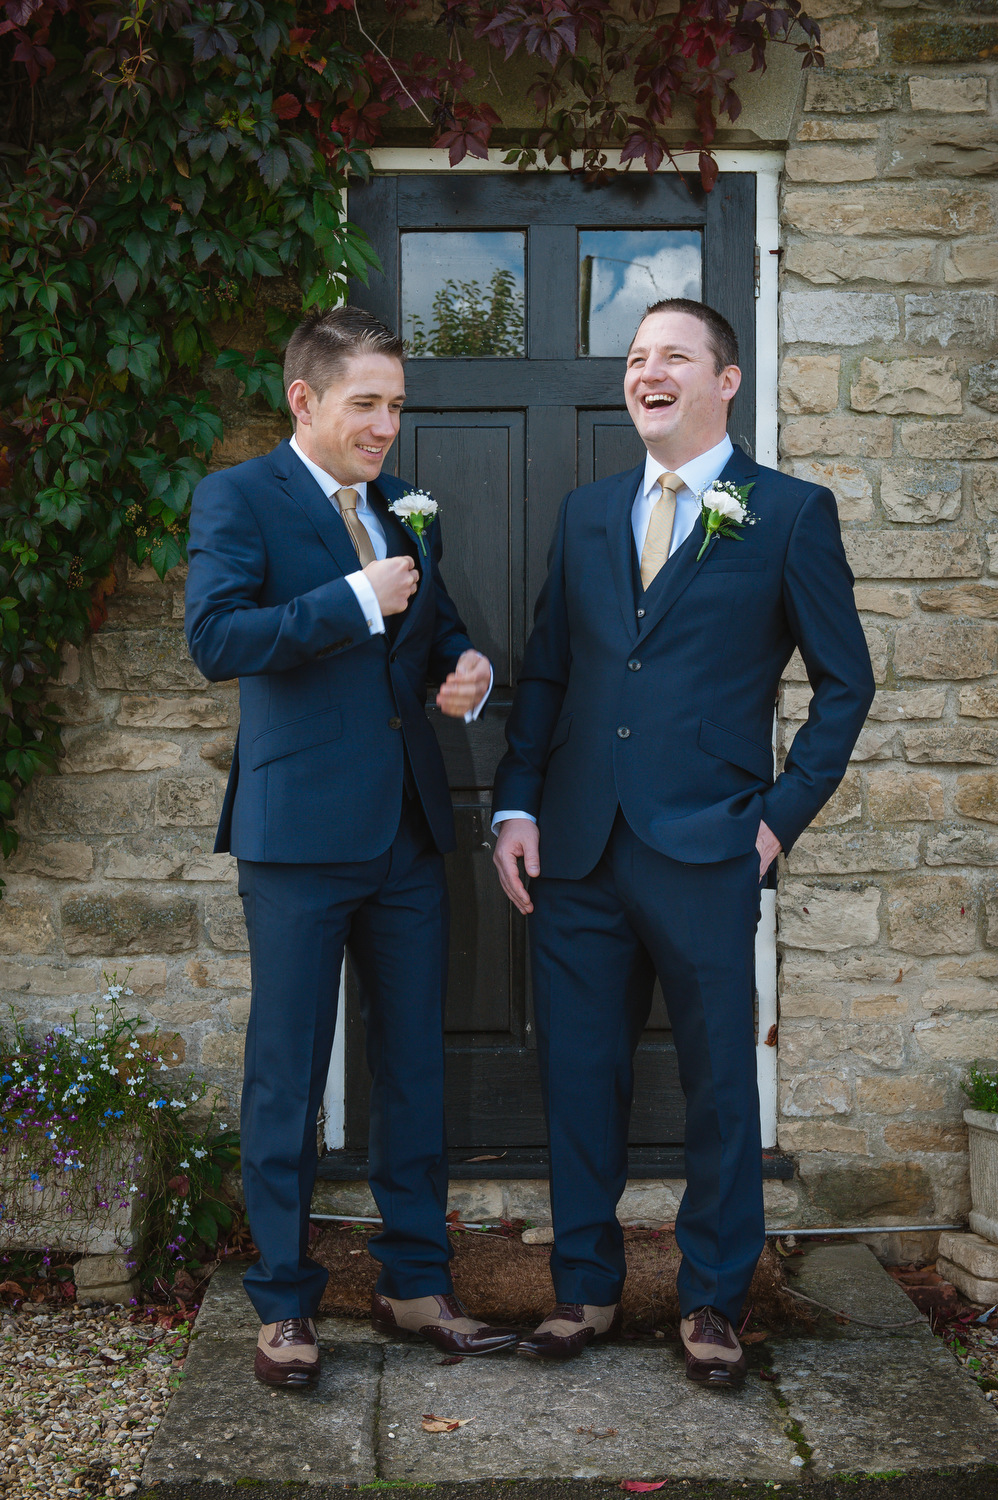 charnwood_weddings_barnsdale_lodge_rutland_dave_j96ane.JPG